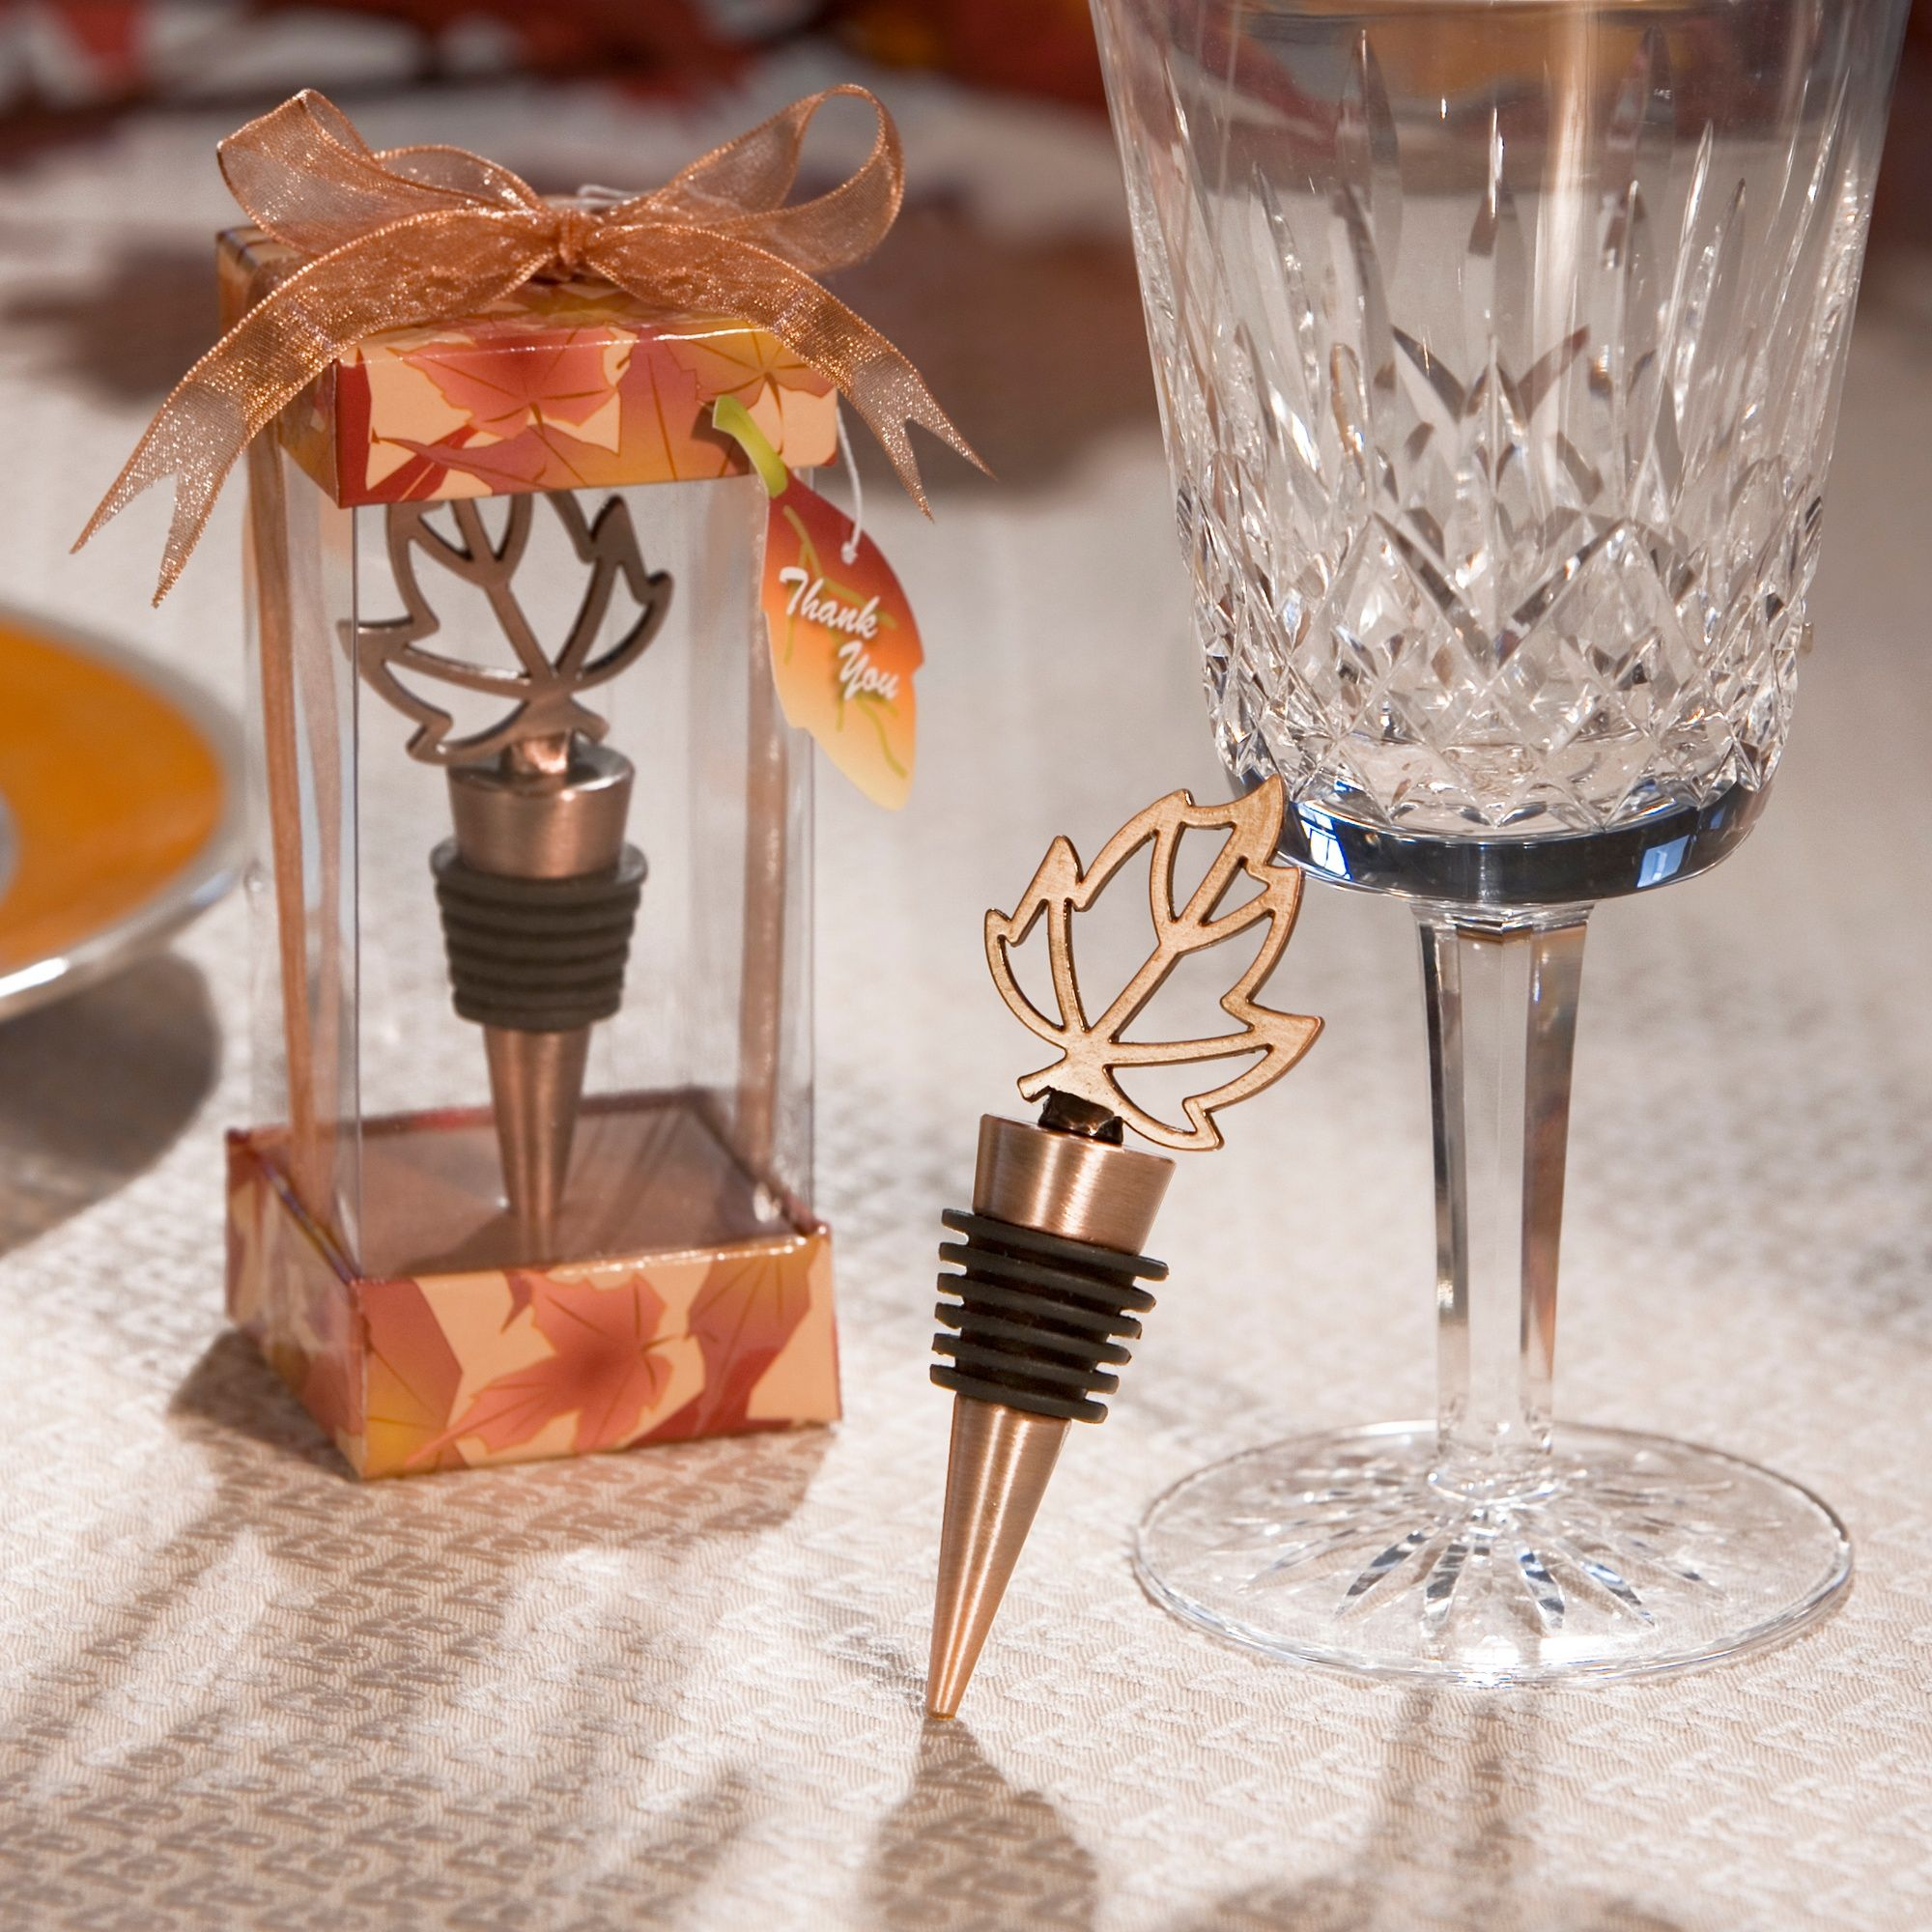 Leaf Bottle Stopper Wedding Favor | #exclusivelyweddings    More Wedding Favors at: www.RealWeddingDay.com